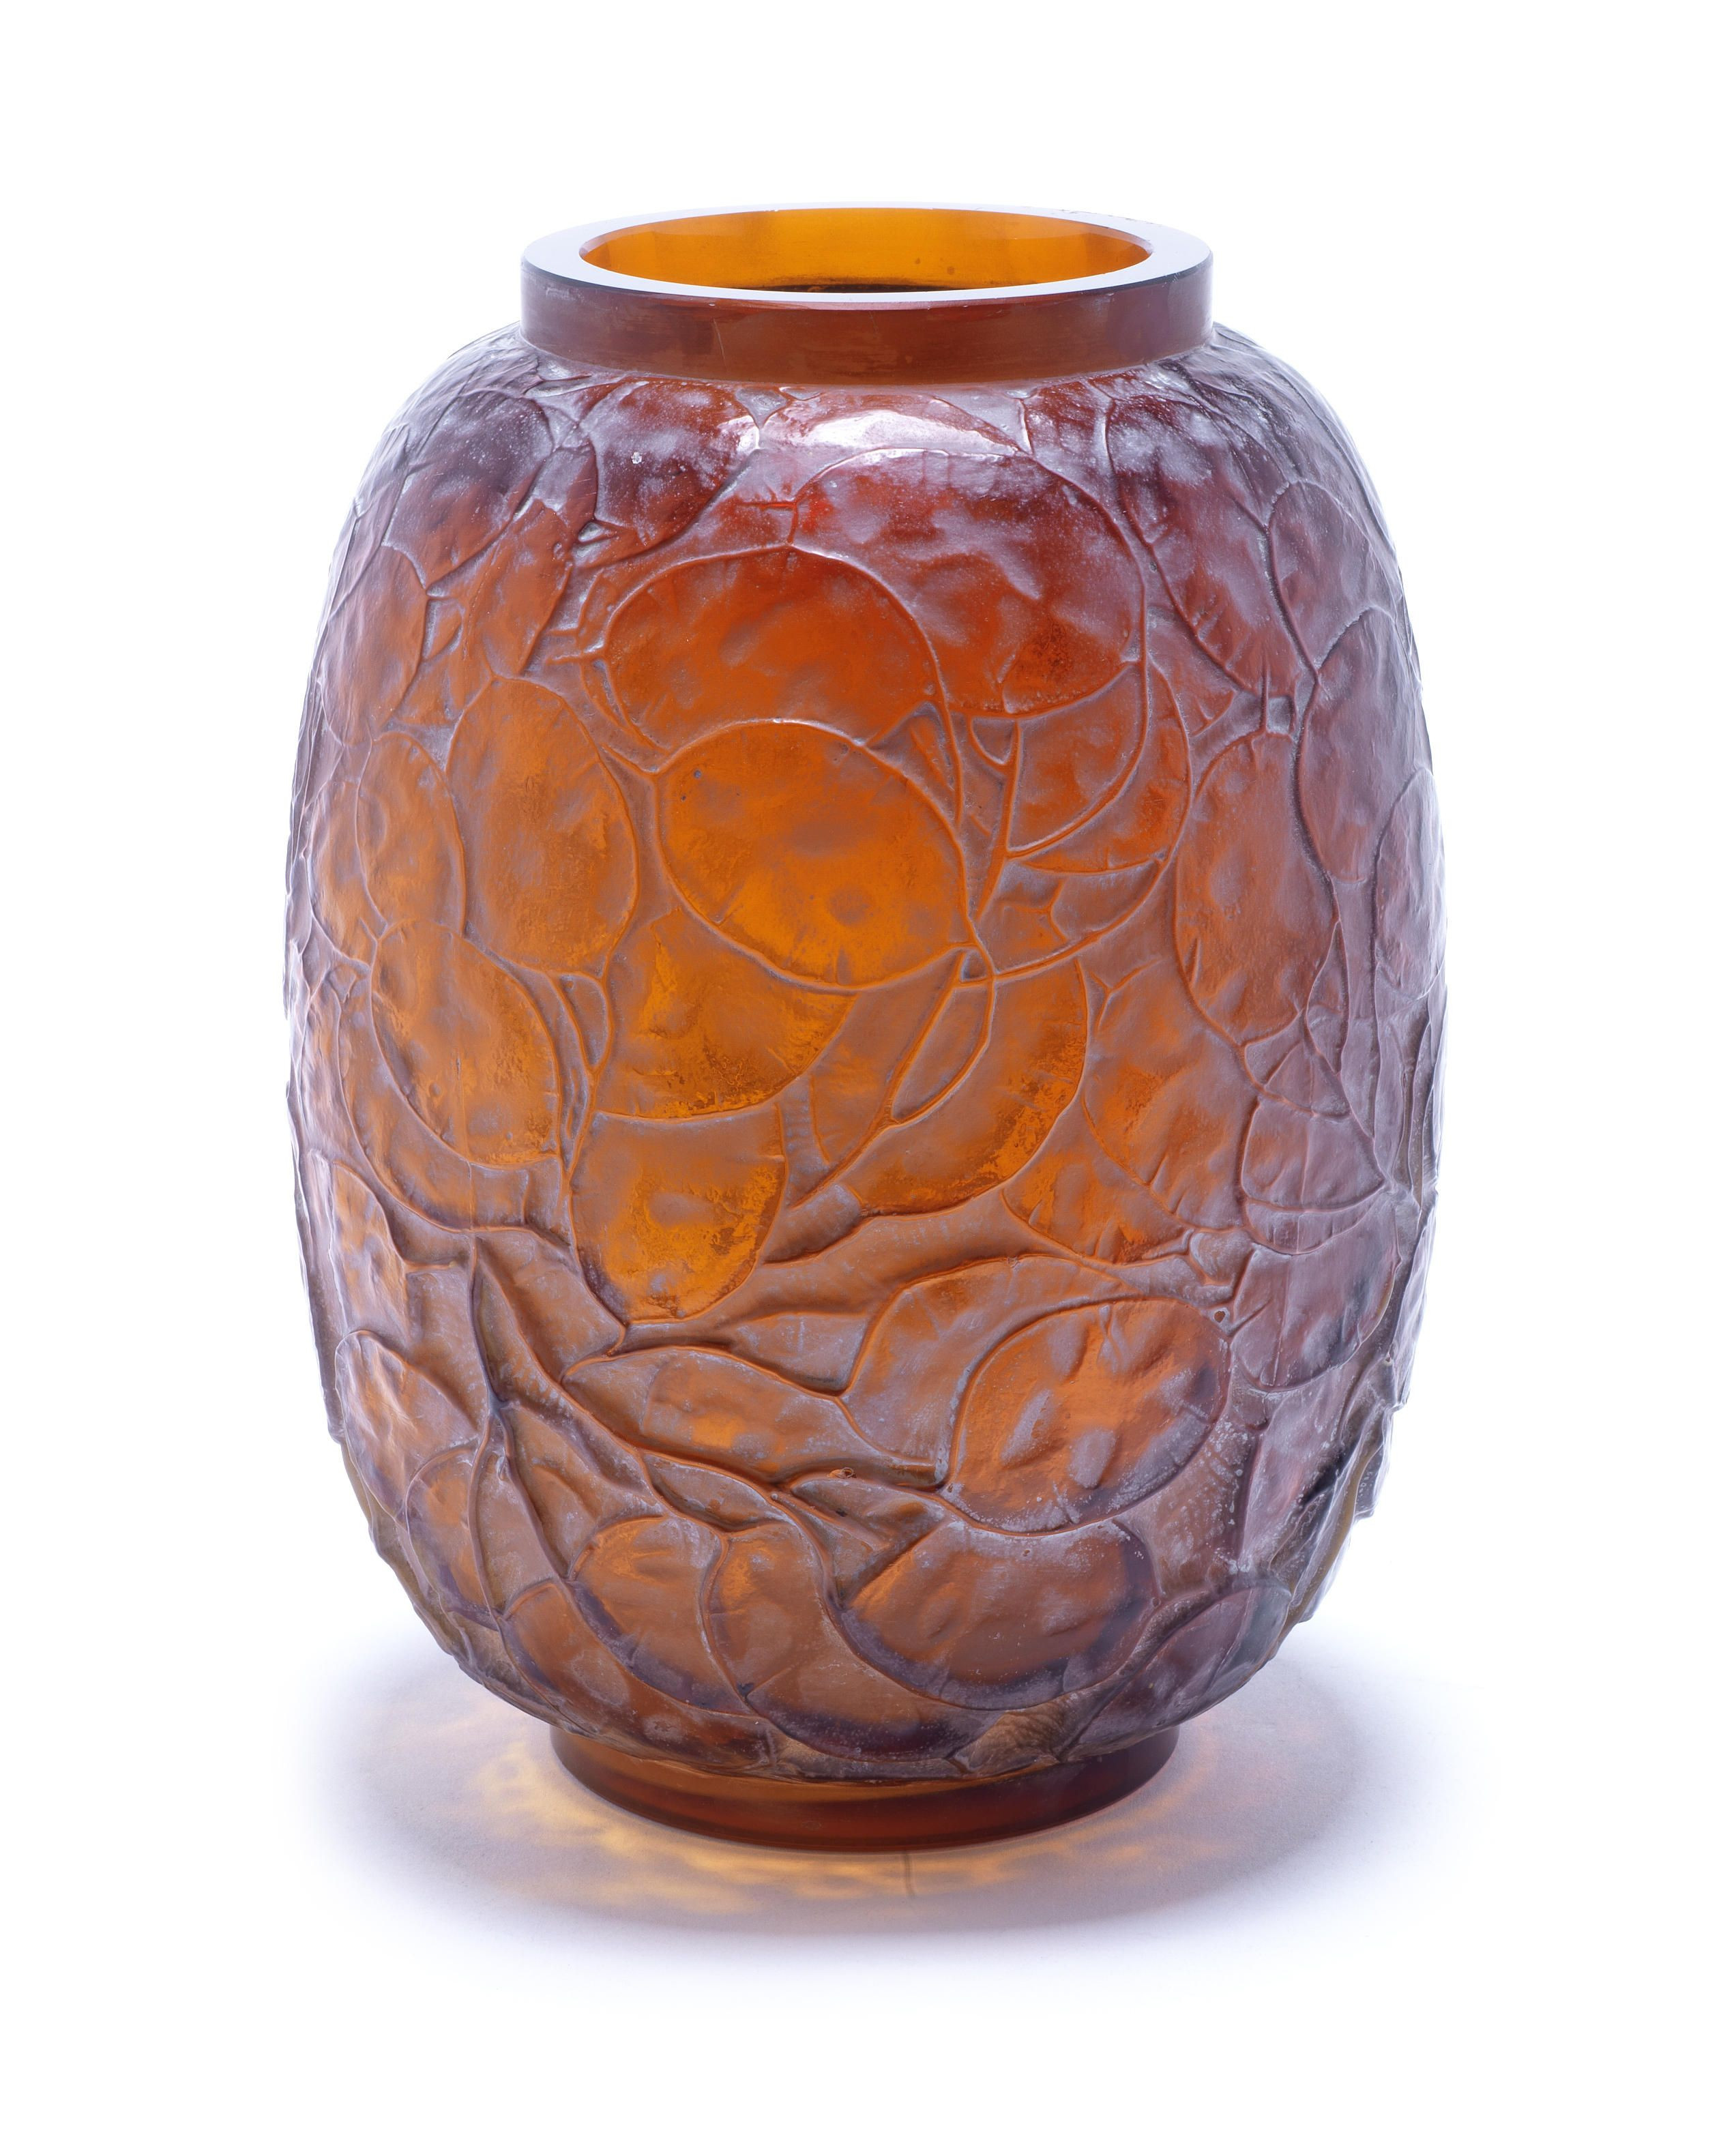 lalique glass vase of rena lalique monnaie du pape a vase design 1914 amber glass within rena lalique monnaie du pape a vase design 1914 amber glass frosted and heightened with white staining 23cm high